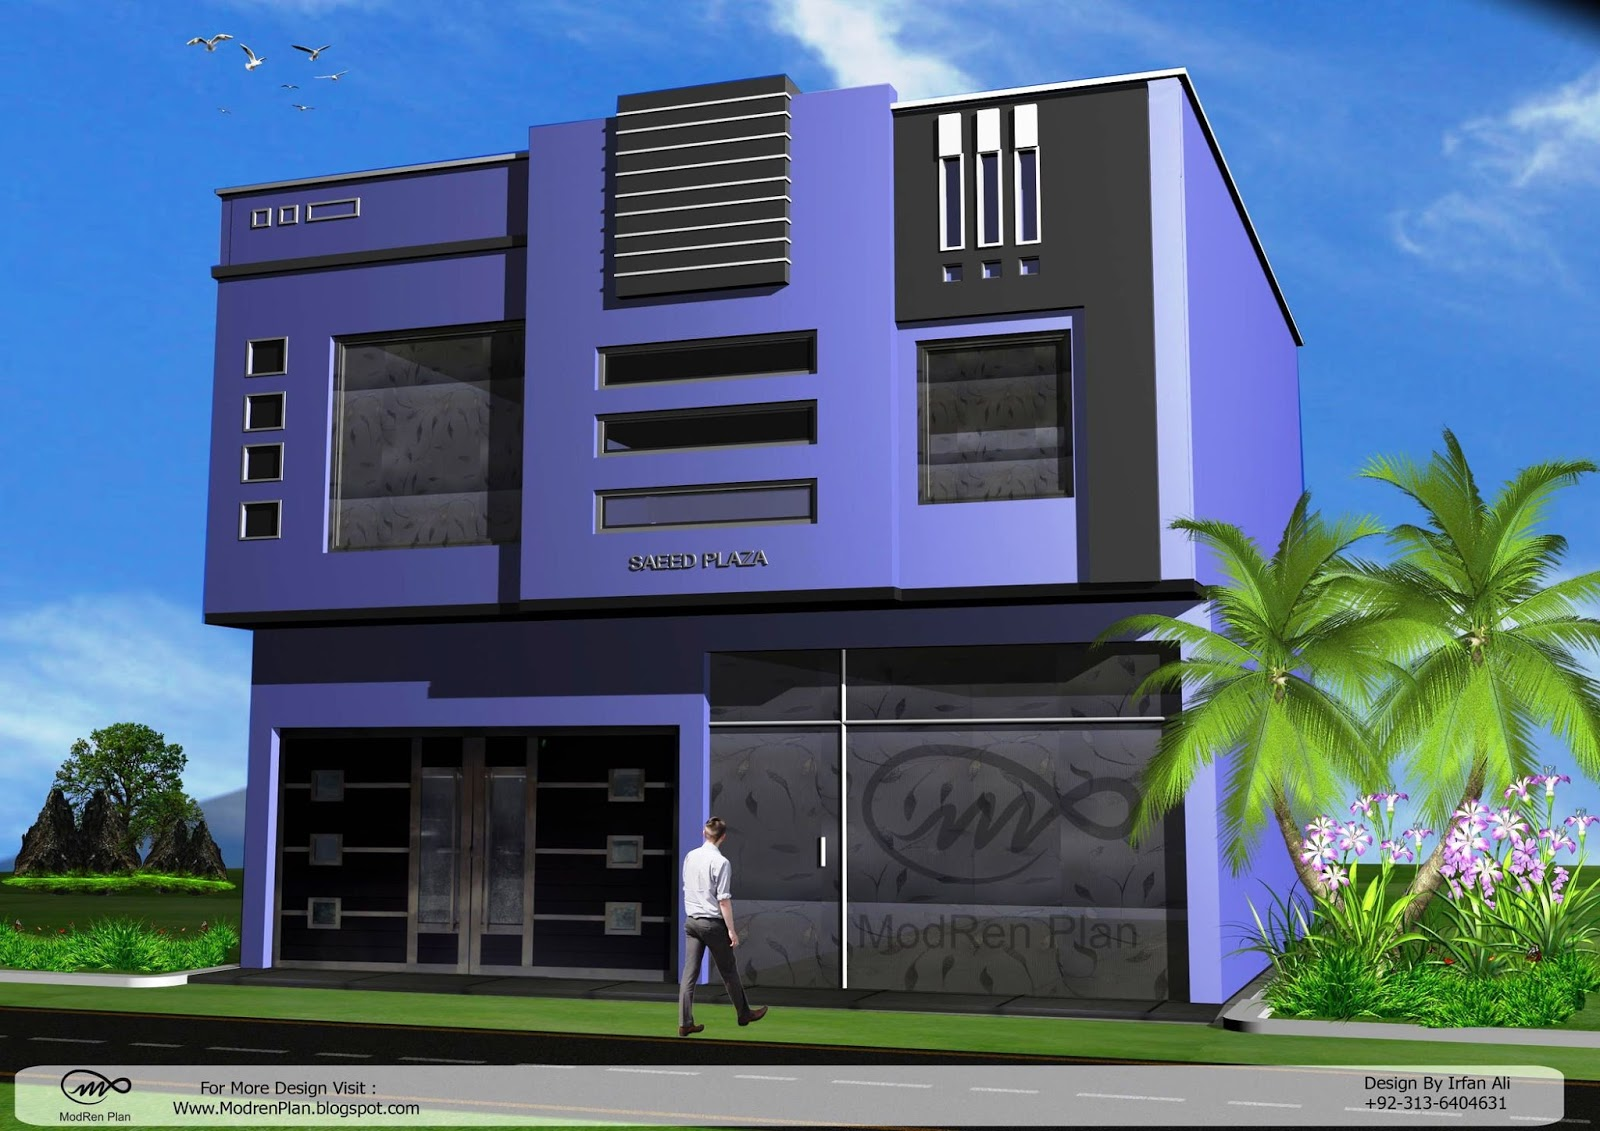 Modern commercial building designs and plaza front elevation for Modern tower house designs